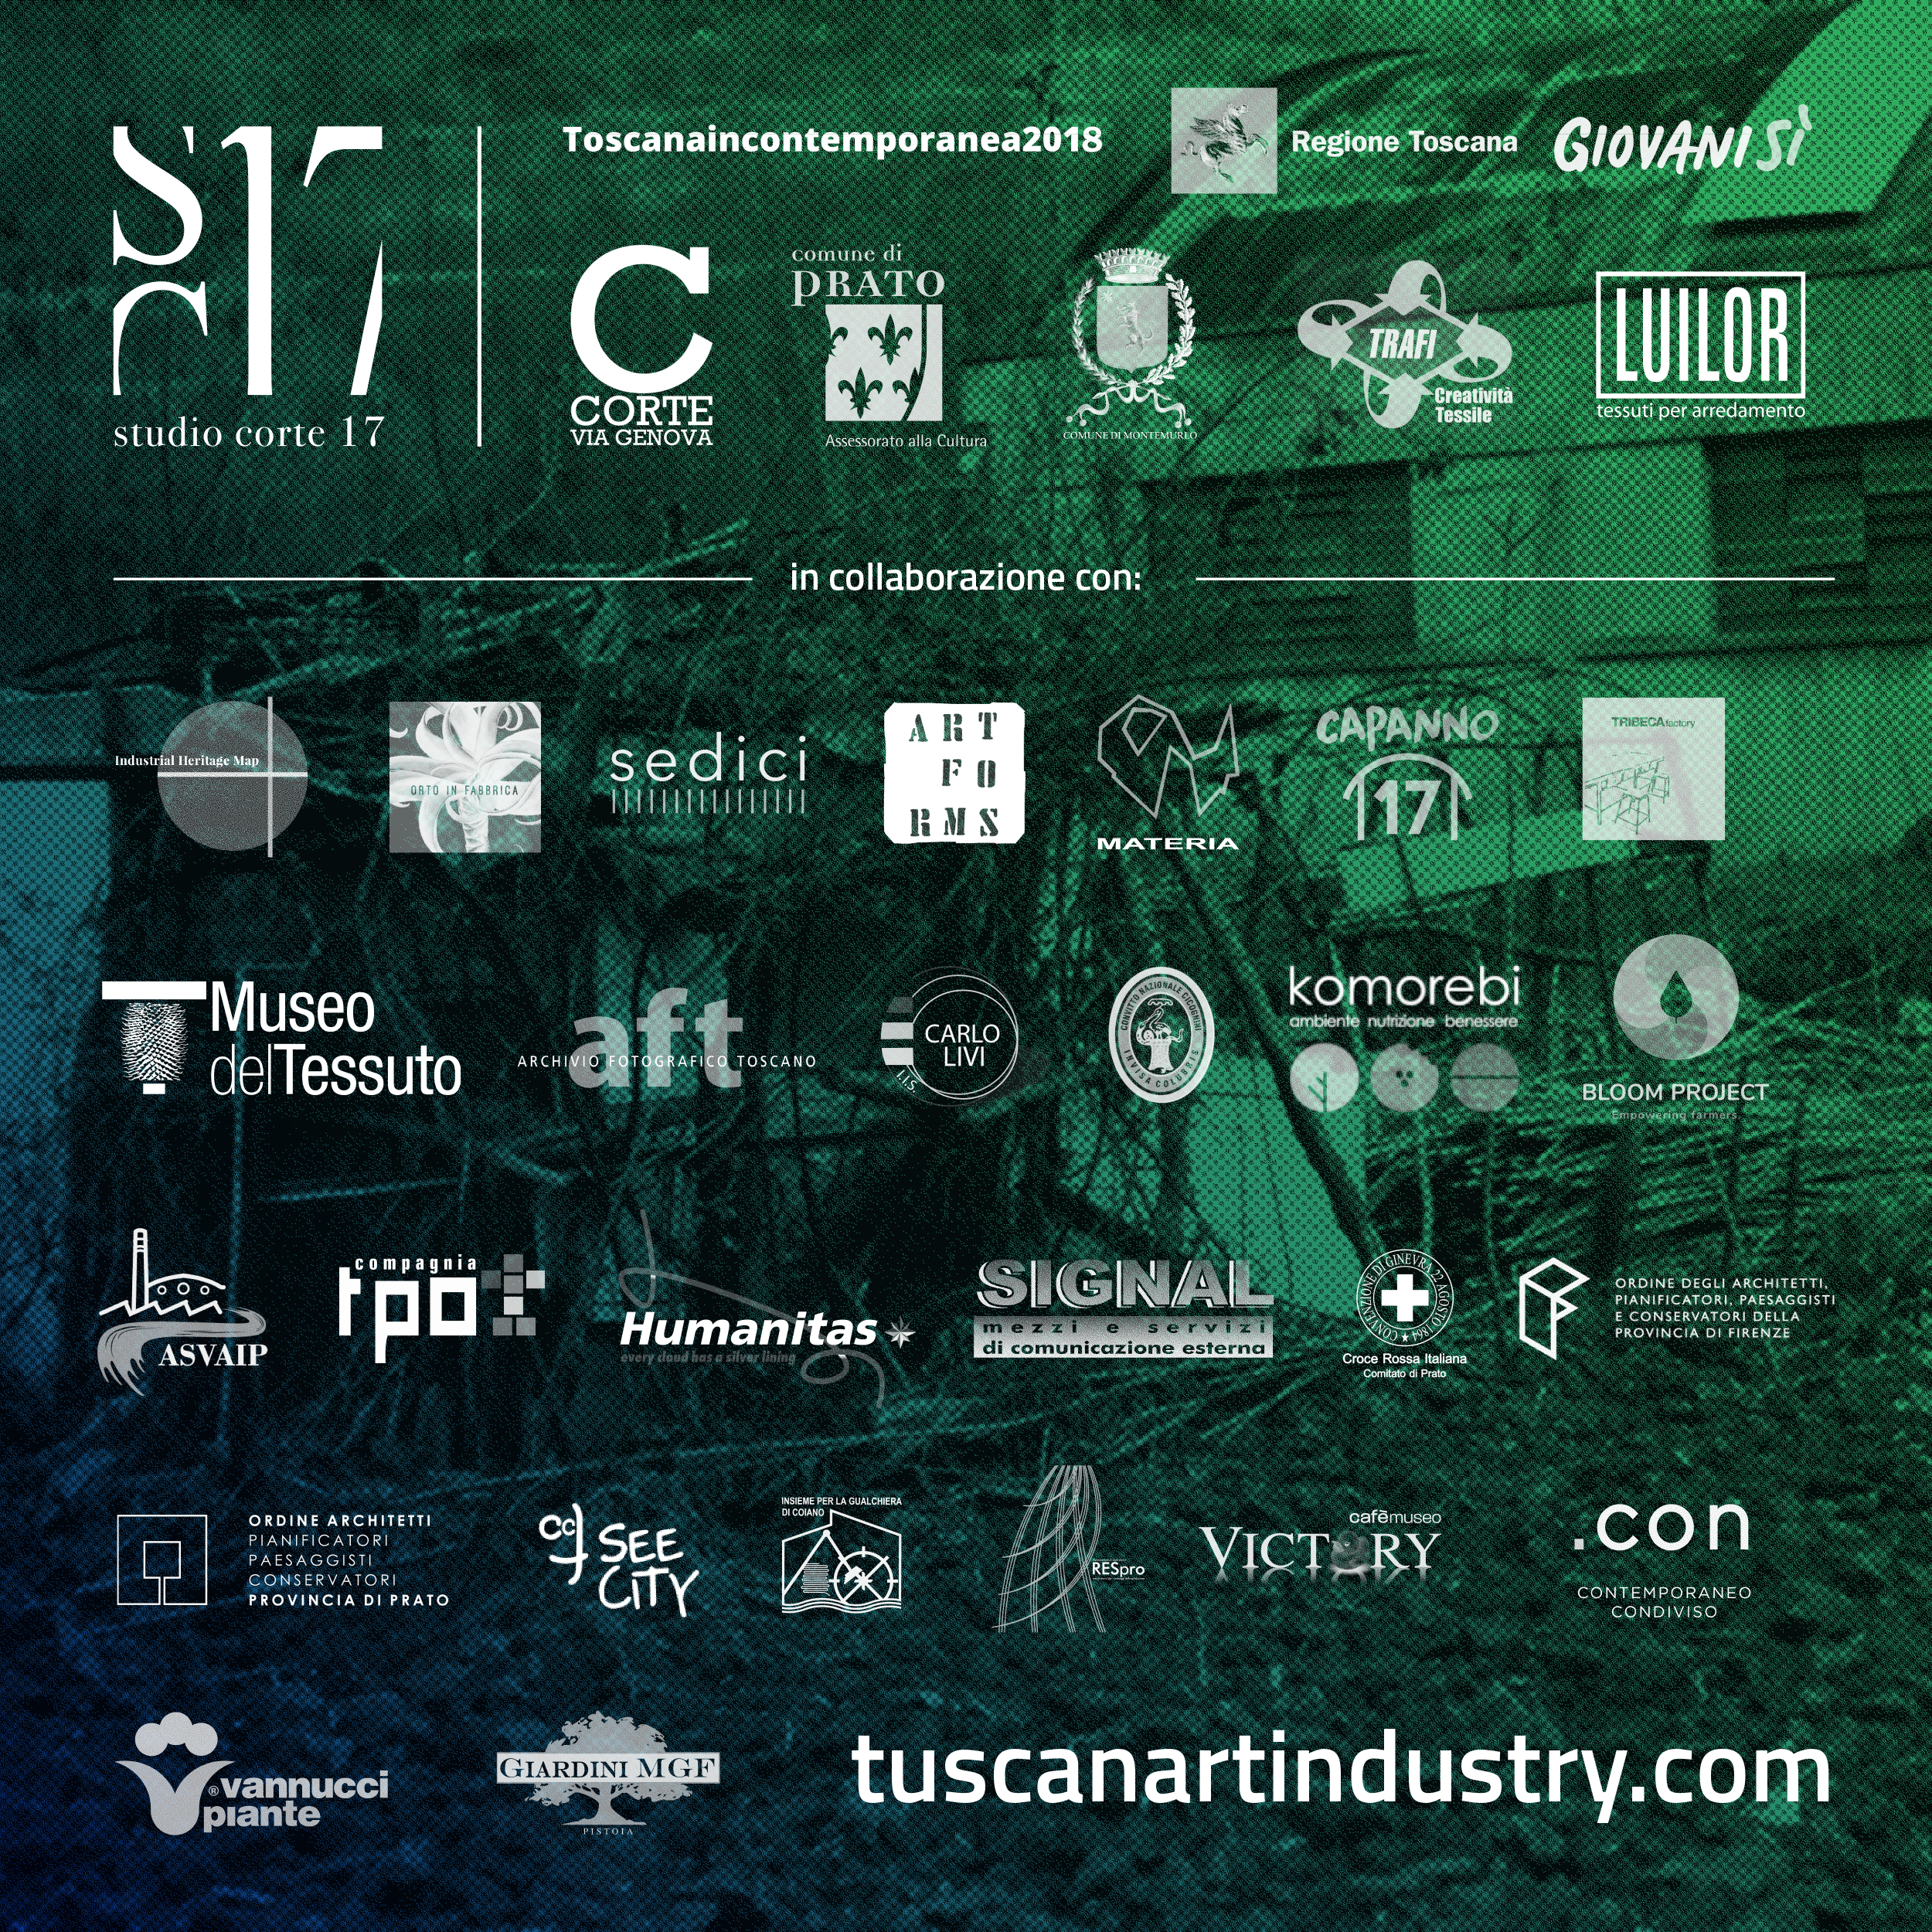 TAI 2018 sponsors and partners